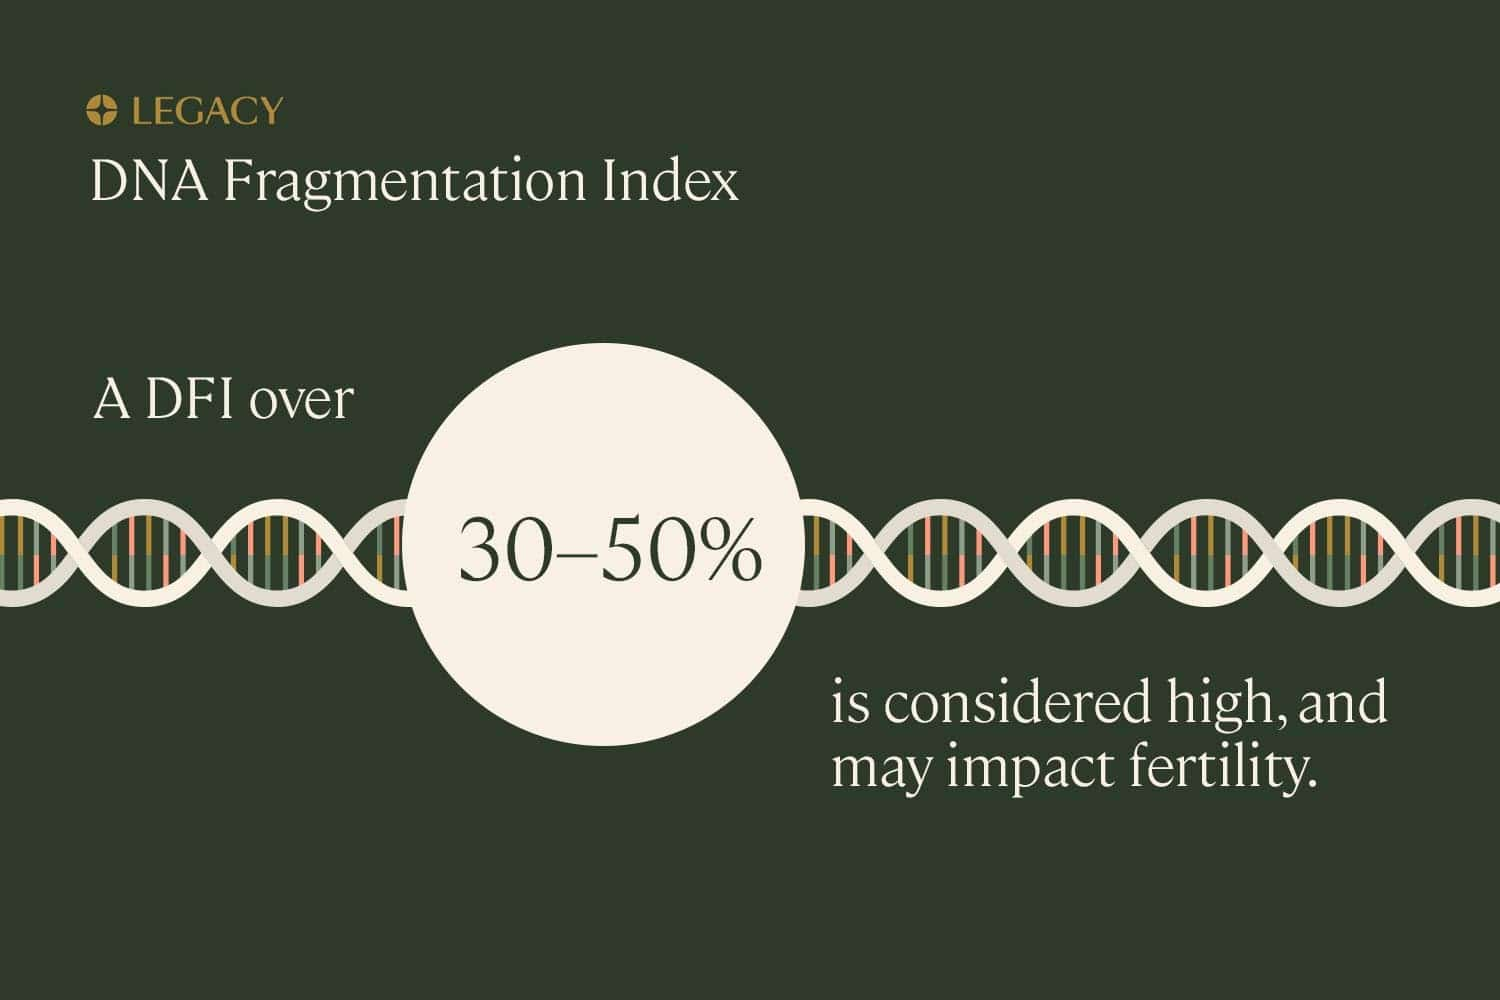 DNA fragmentation index